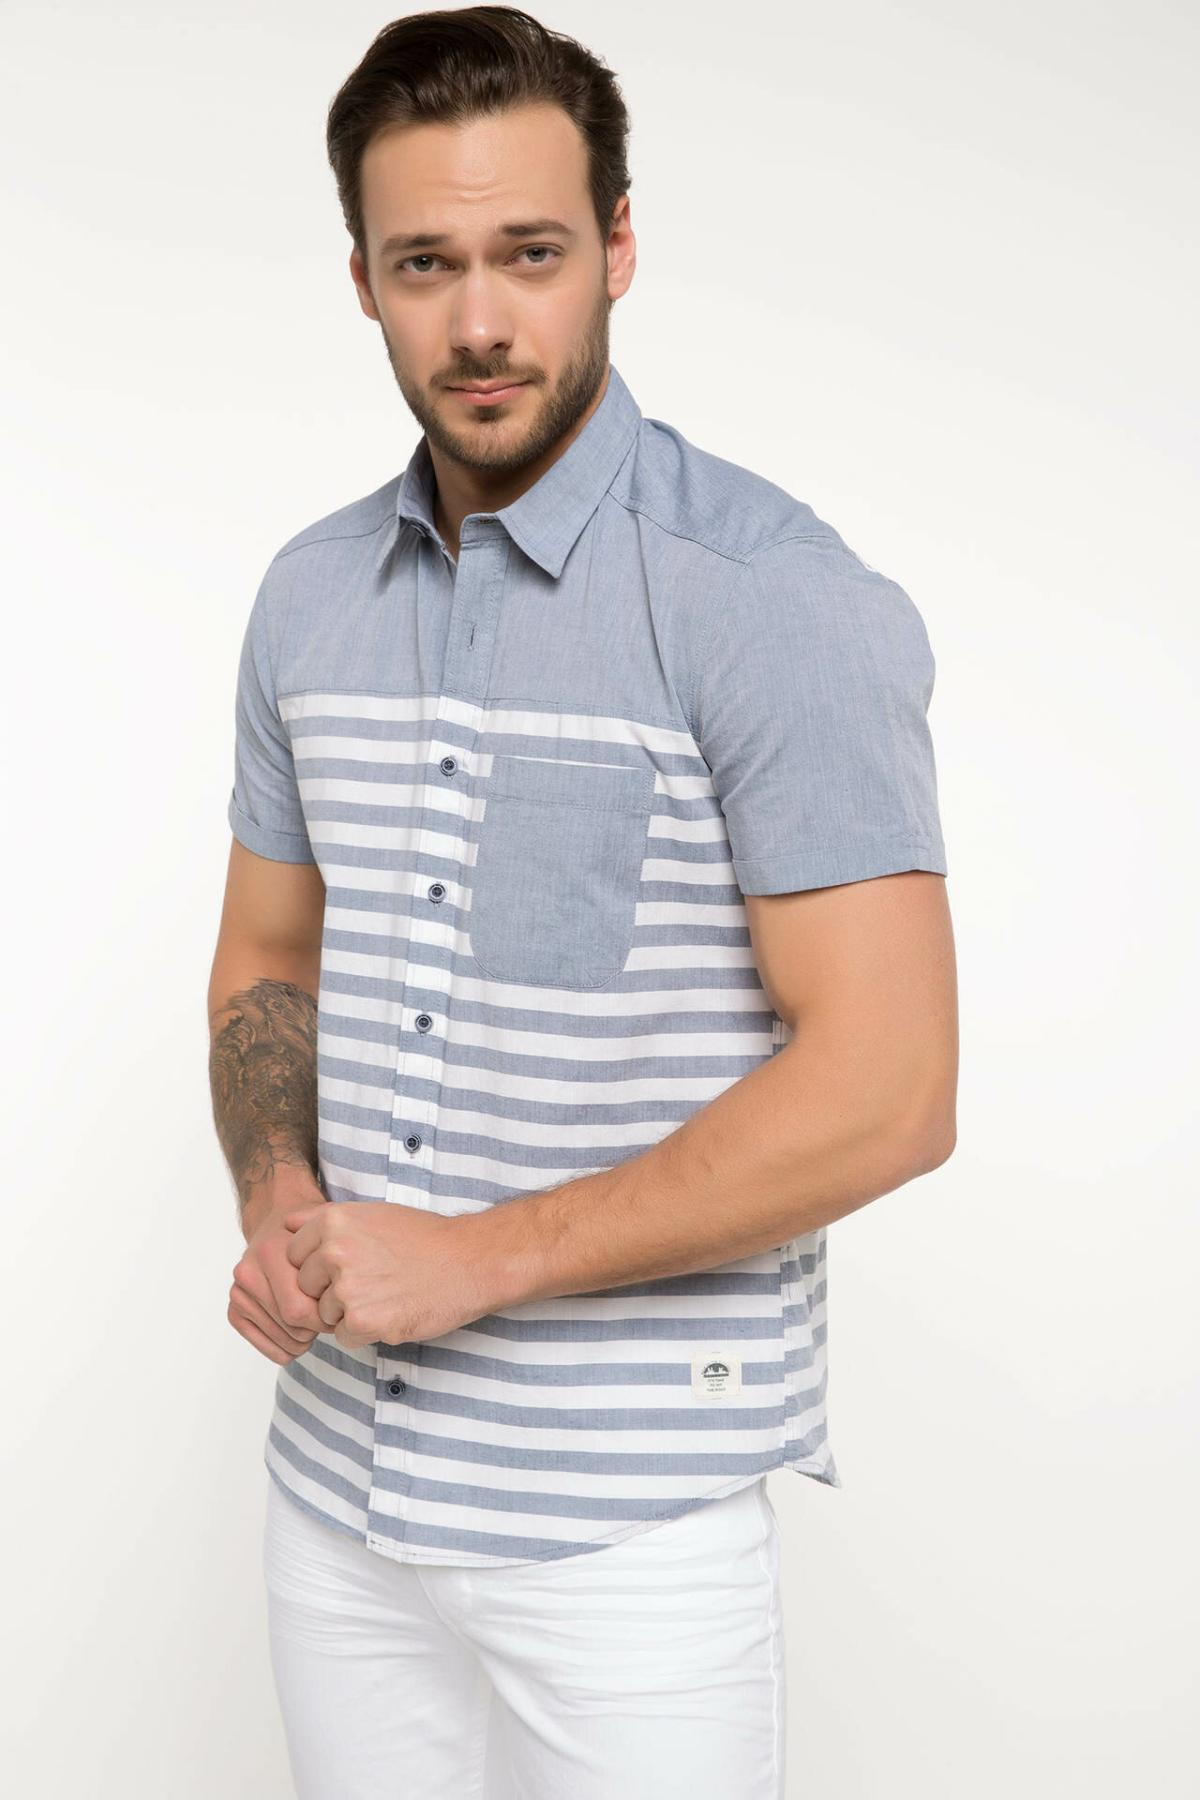 DeFacto Men Fashion Simple Shirts Short Sleeve Striped Shirts Mens Casual Lapel Collar Casual Shirt New - I6389AZ18SM